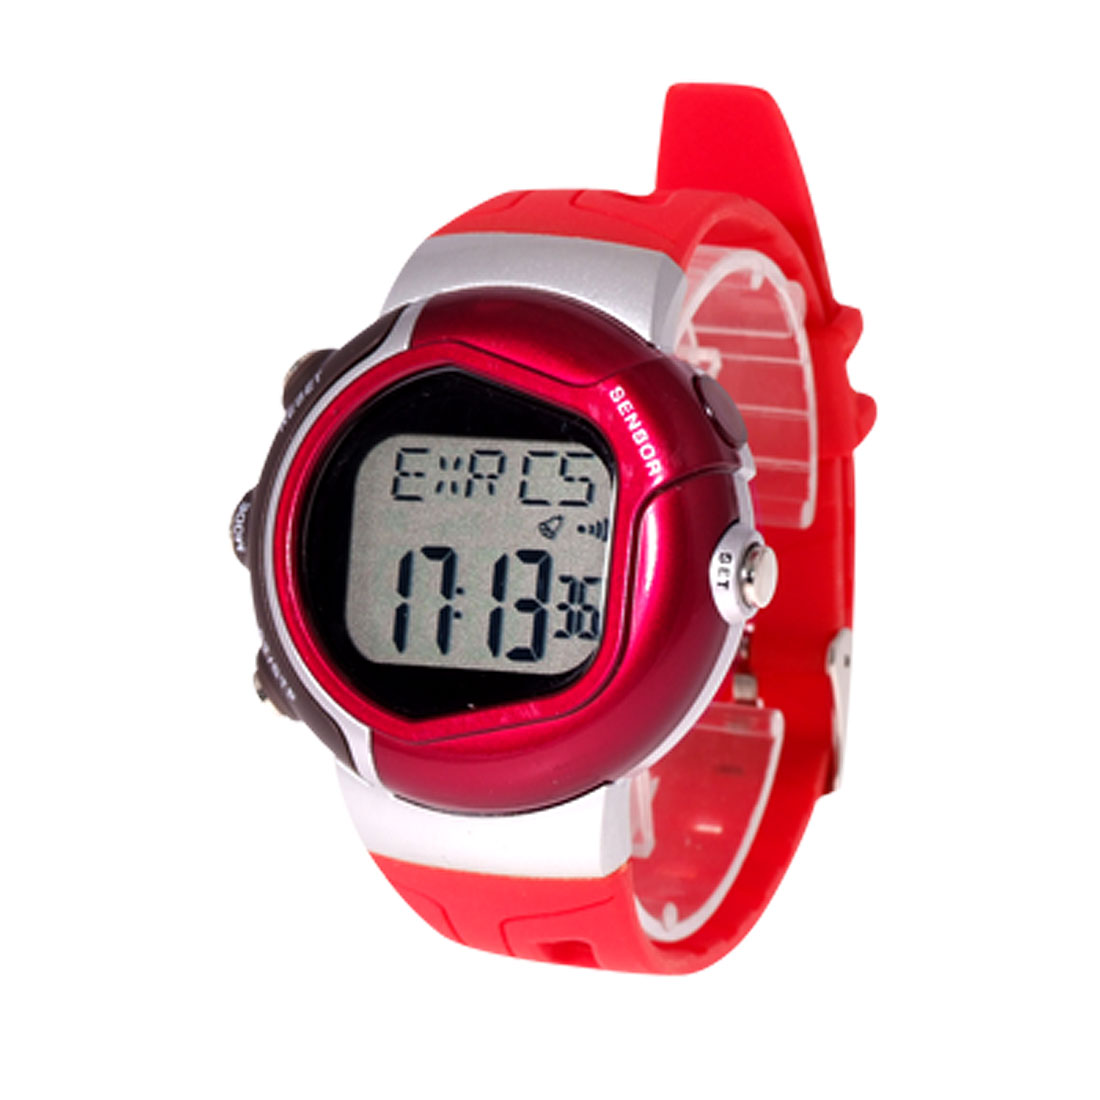 Red Plastic Band Stopwatch Alarm Watch Heart Pulse Rate Monitor